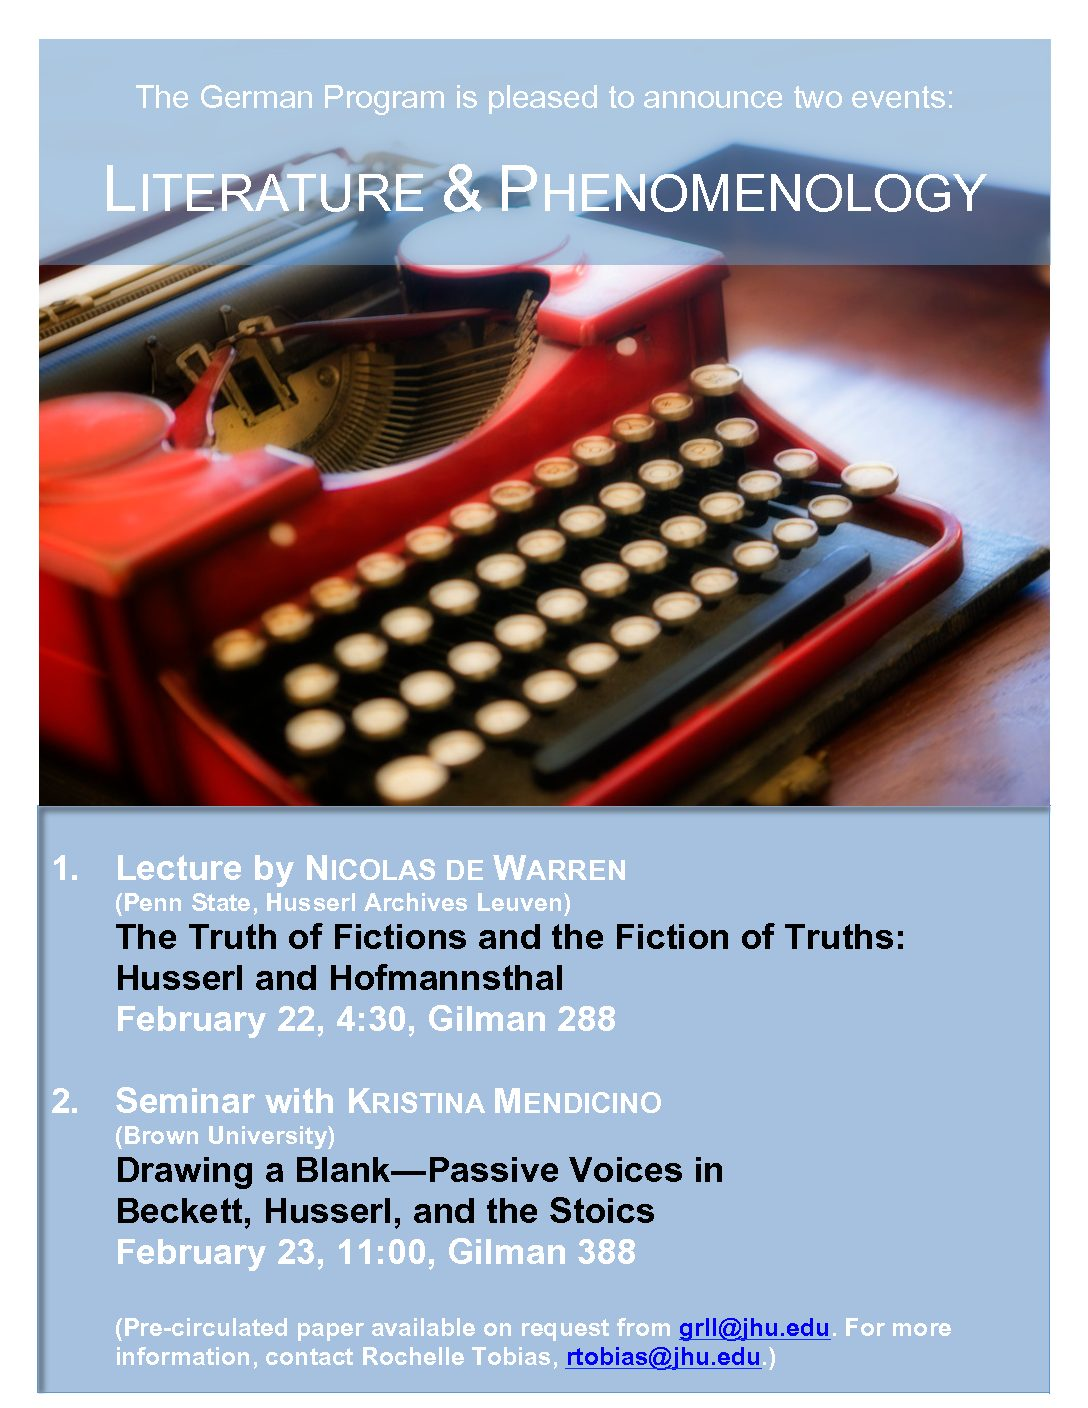 Drawing a Blank—Passive Voices in Beckett, Husserl, and the Stoics, Seminar with Kristina Mendicino (Brown)